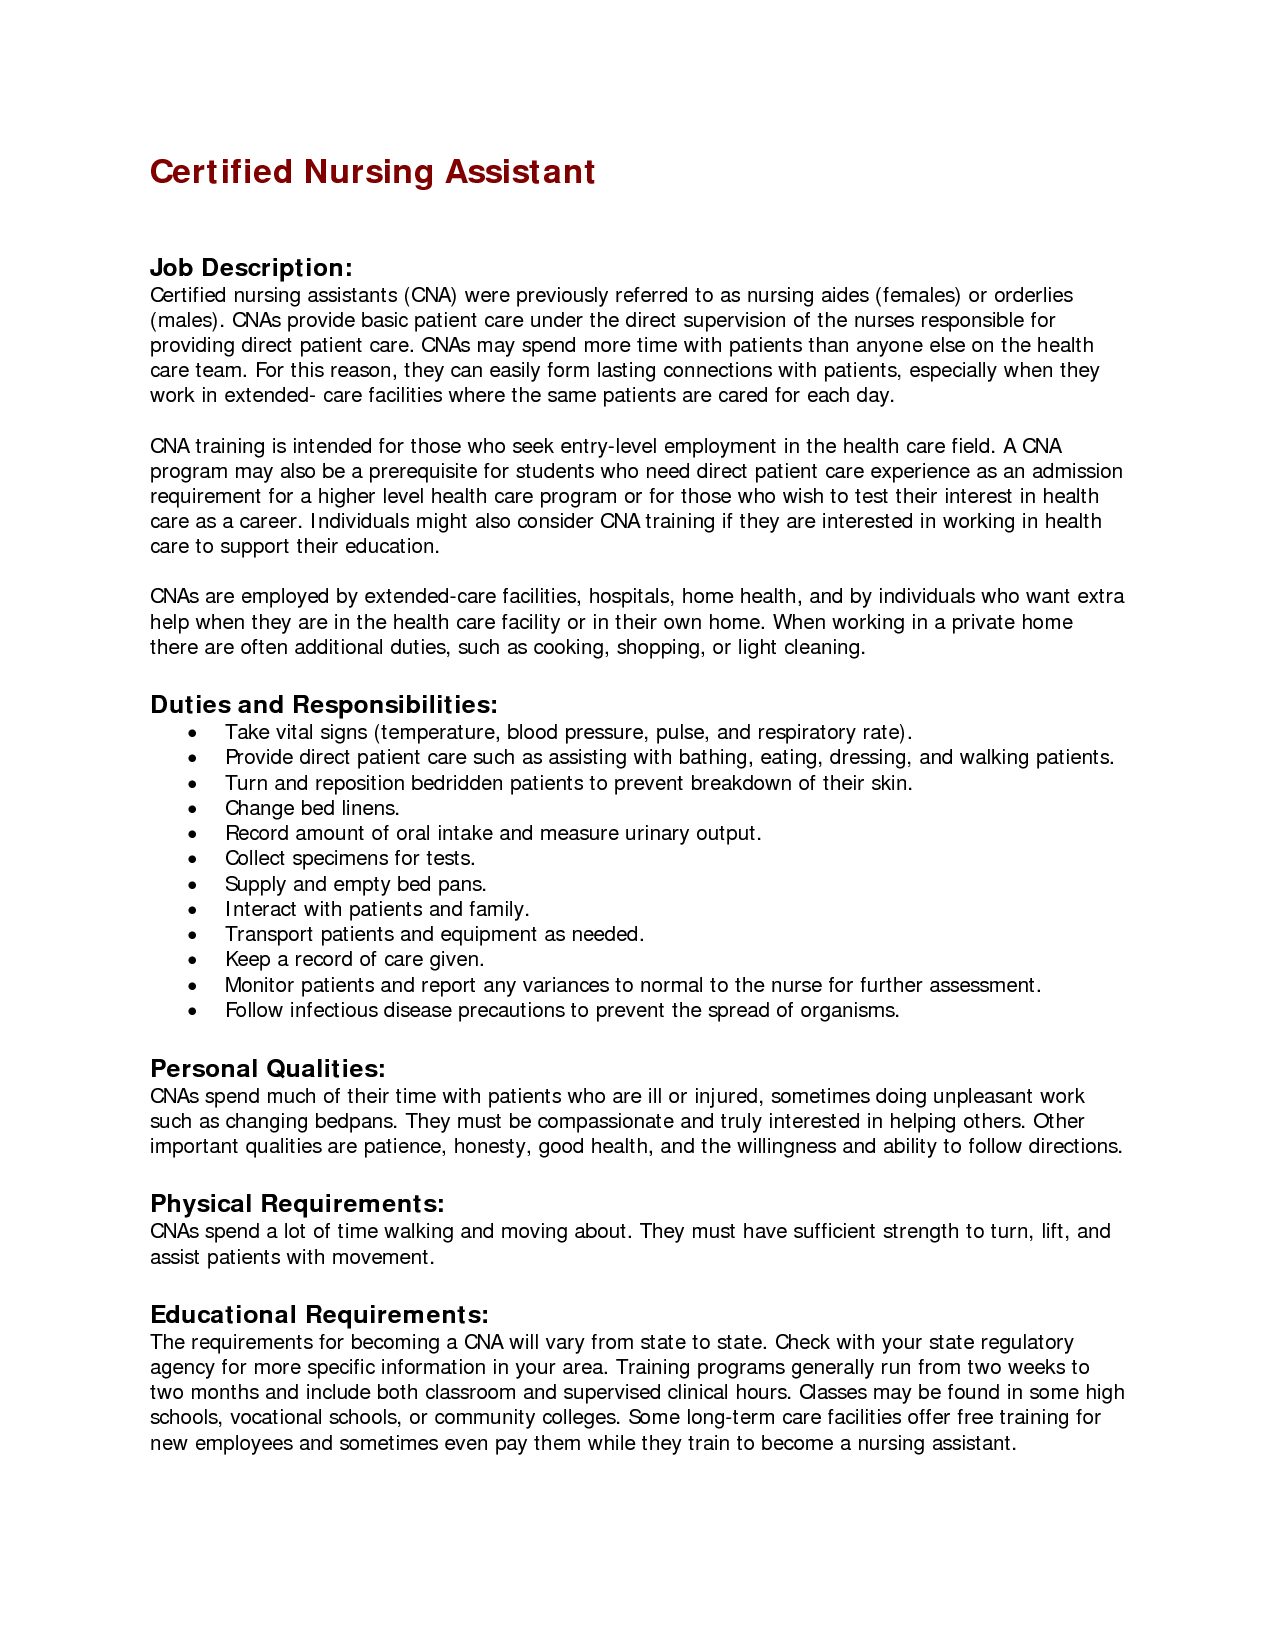 Attractive Cna Duties Resume Format Certified Nursing Assistant Job Duties